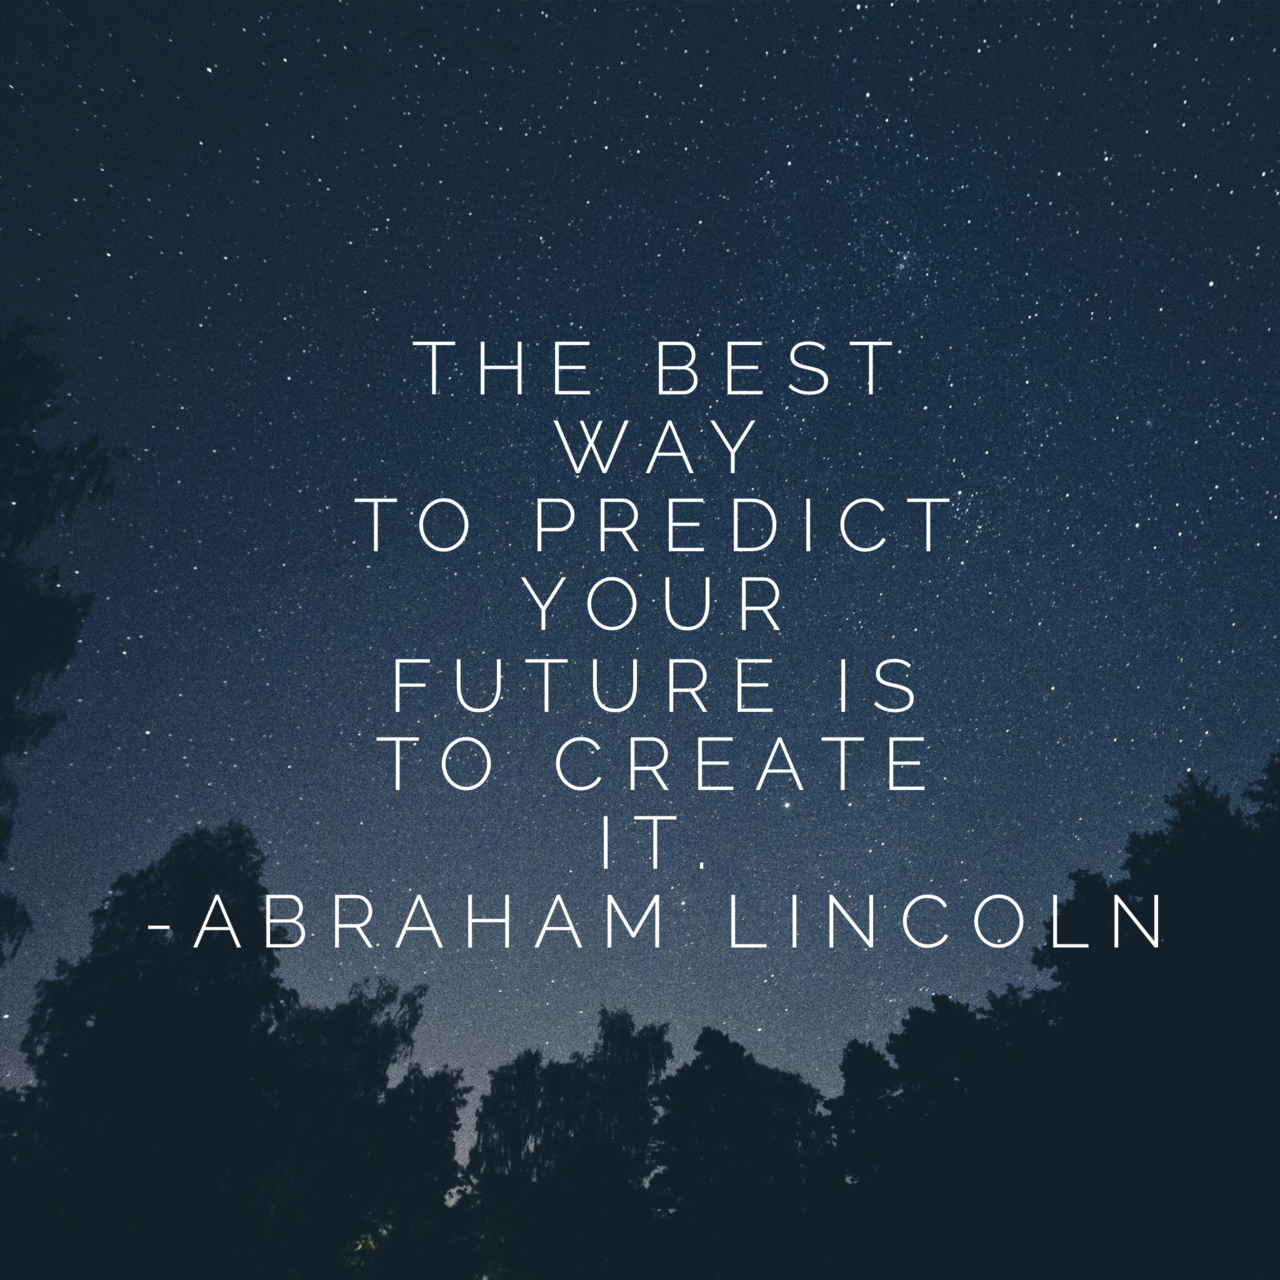 Abraham Lincoln quote,